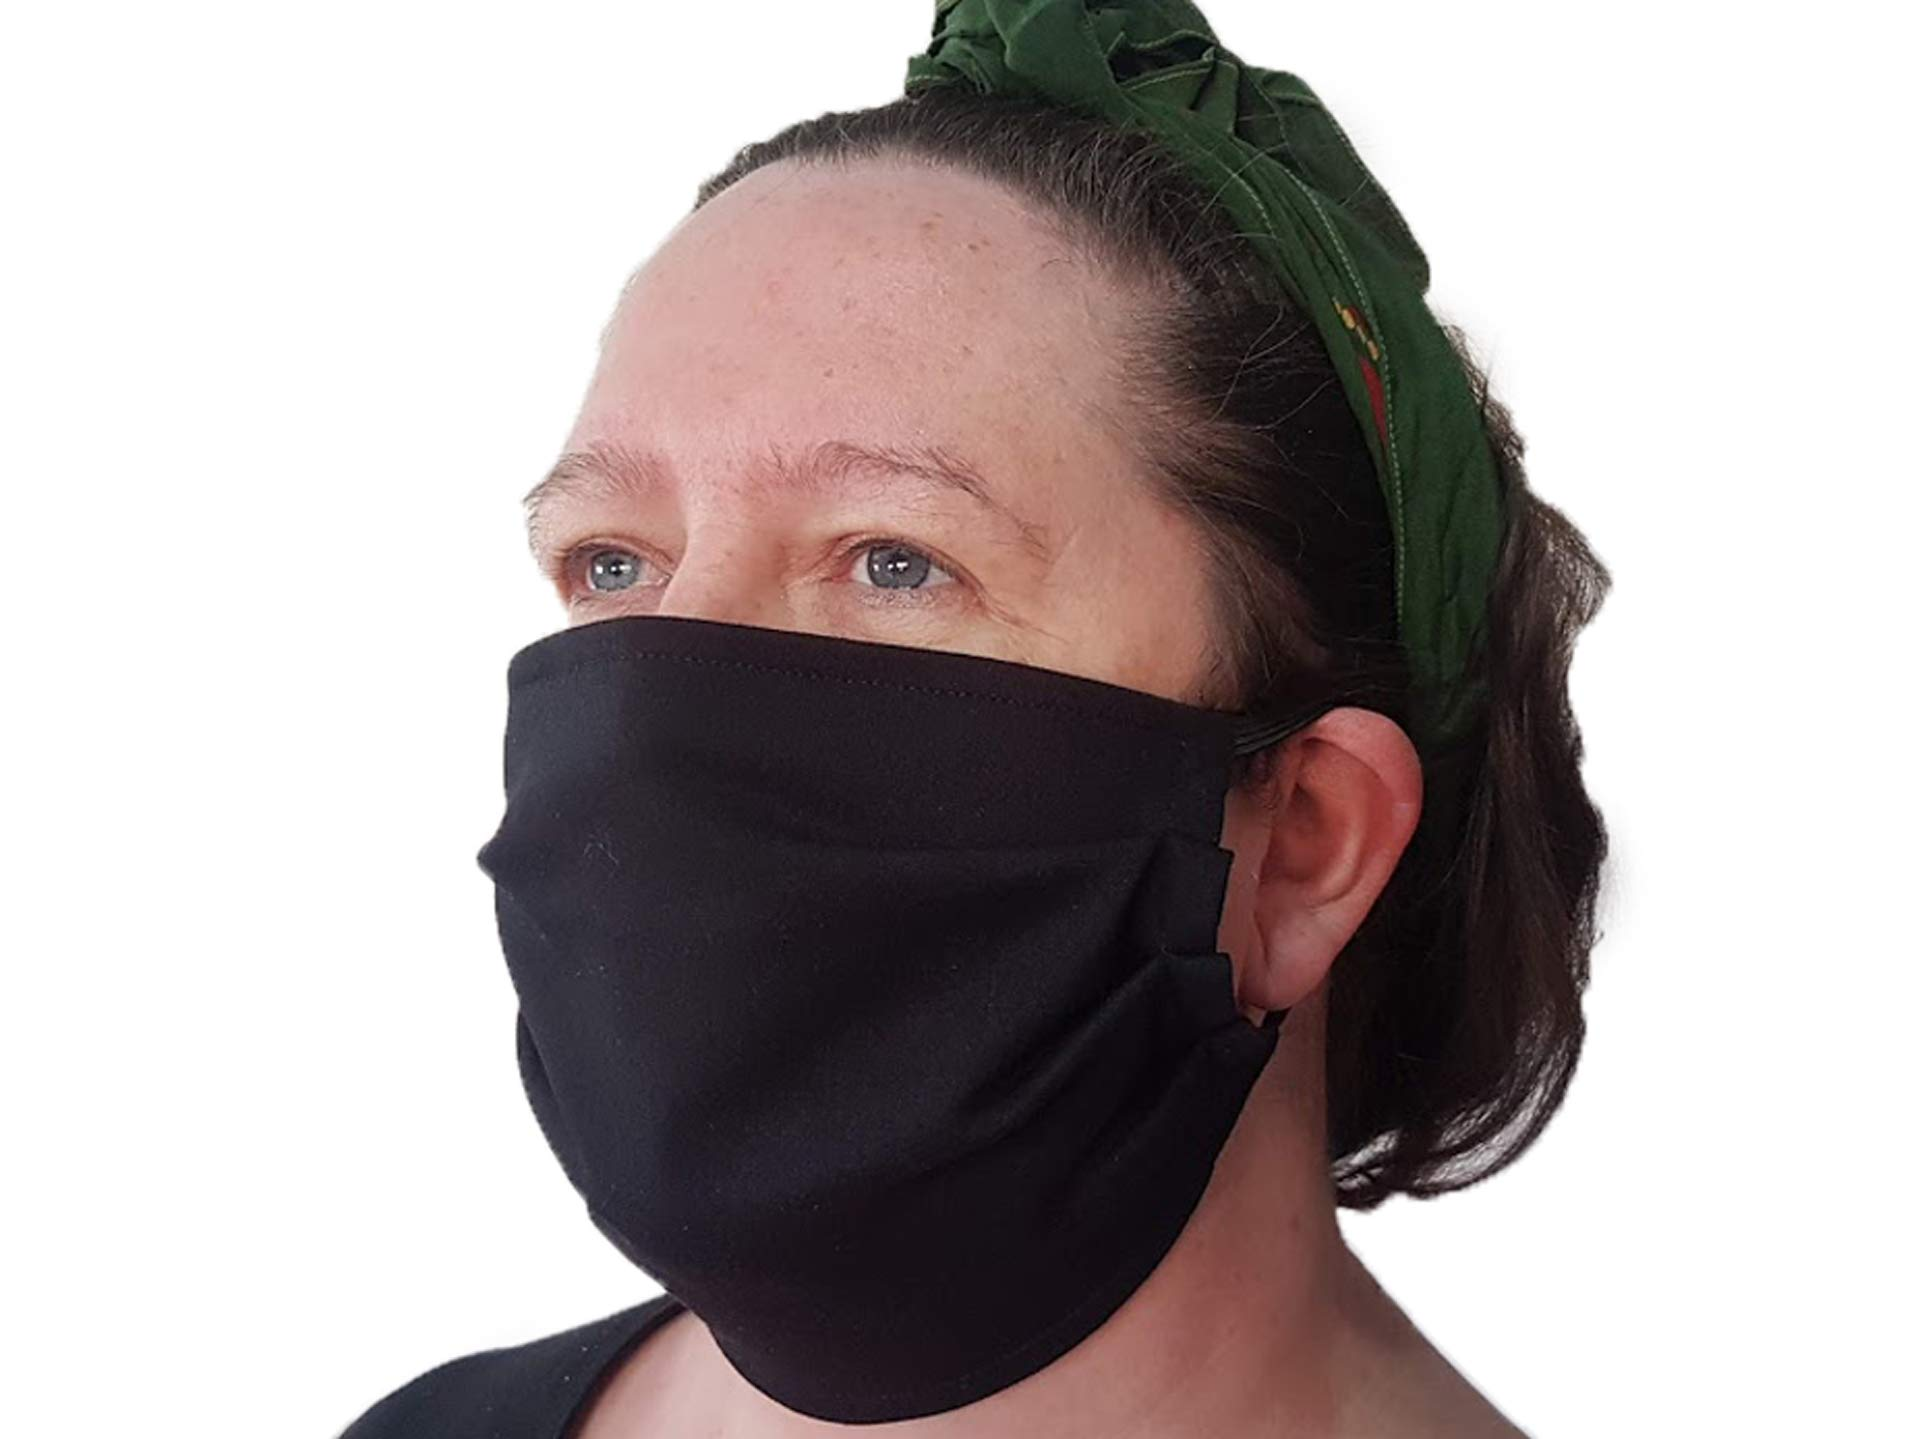 3 Pieces, 2 Layer, Cotton, Washable & Reusable Face Mask. Made in The UK by Natural Solutions. Adult, Anti-fog, Haze, Dustproof Fabric Mask. For Running, Cycling, Outdoor Activities, Black